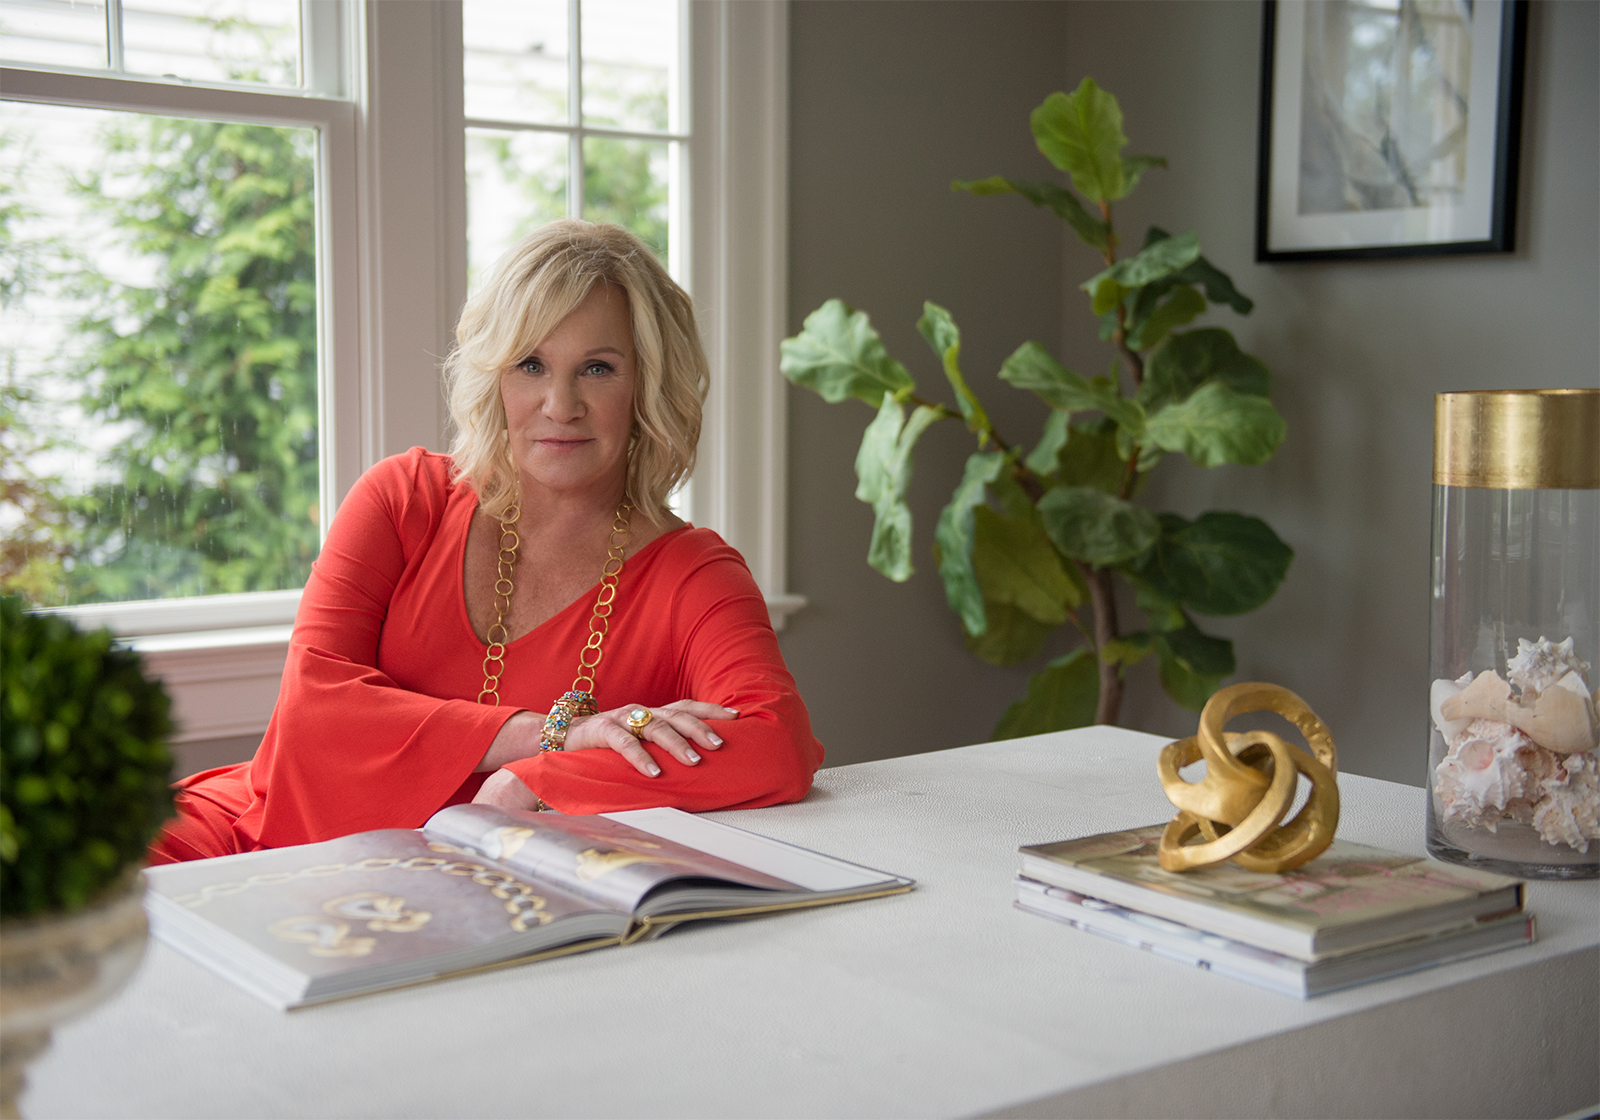 Kelly Sohigian - Interior Designer and Home Stager